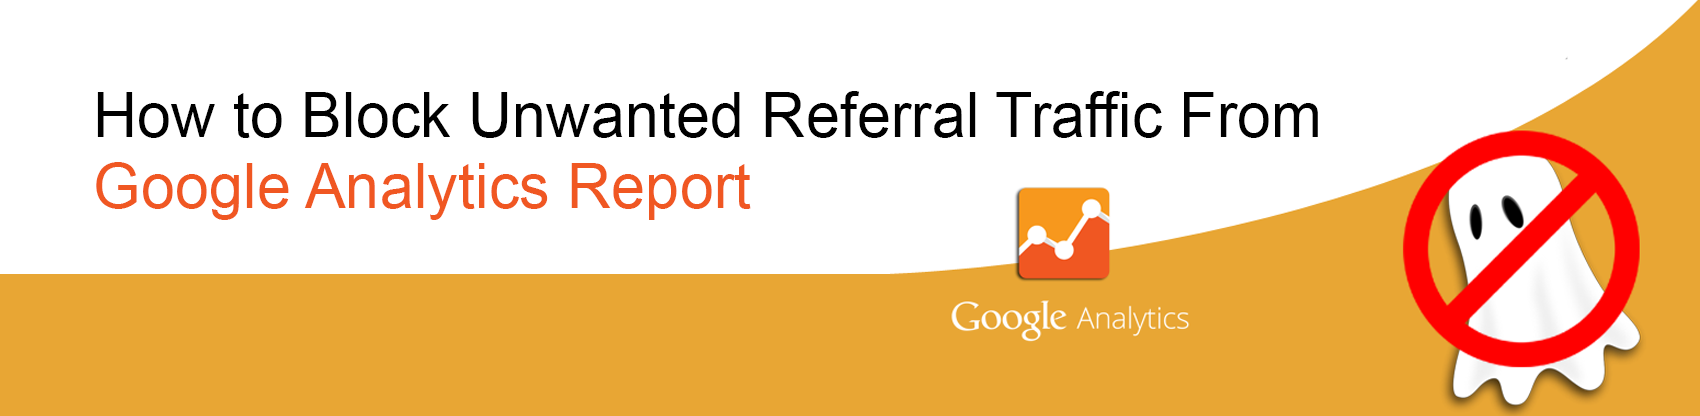 How to Block Unwanted Referral Traffic from Google Analytics report